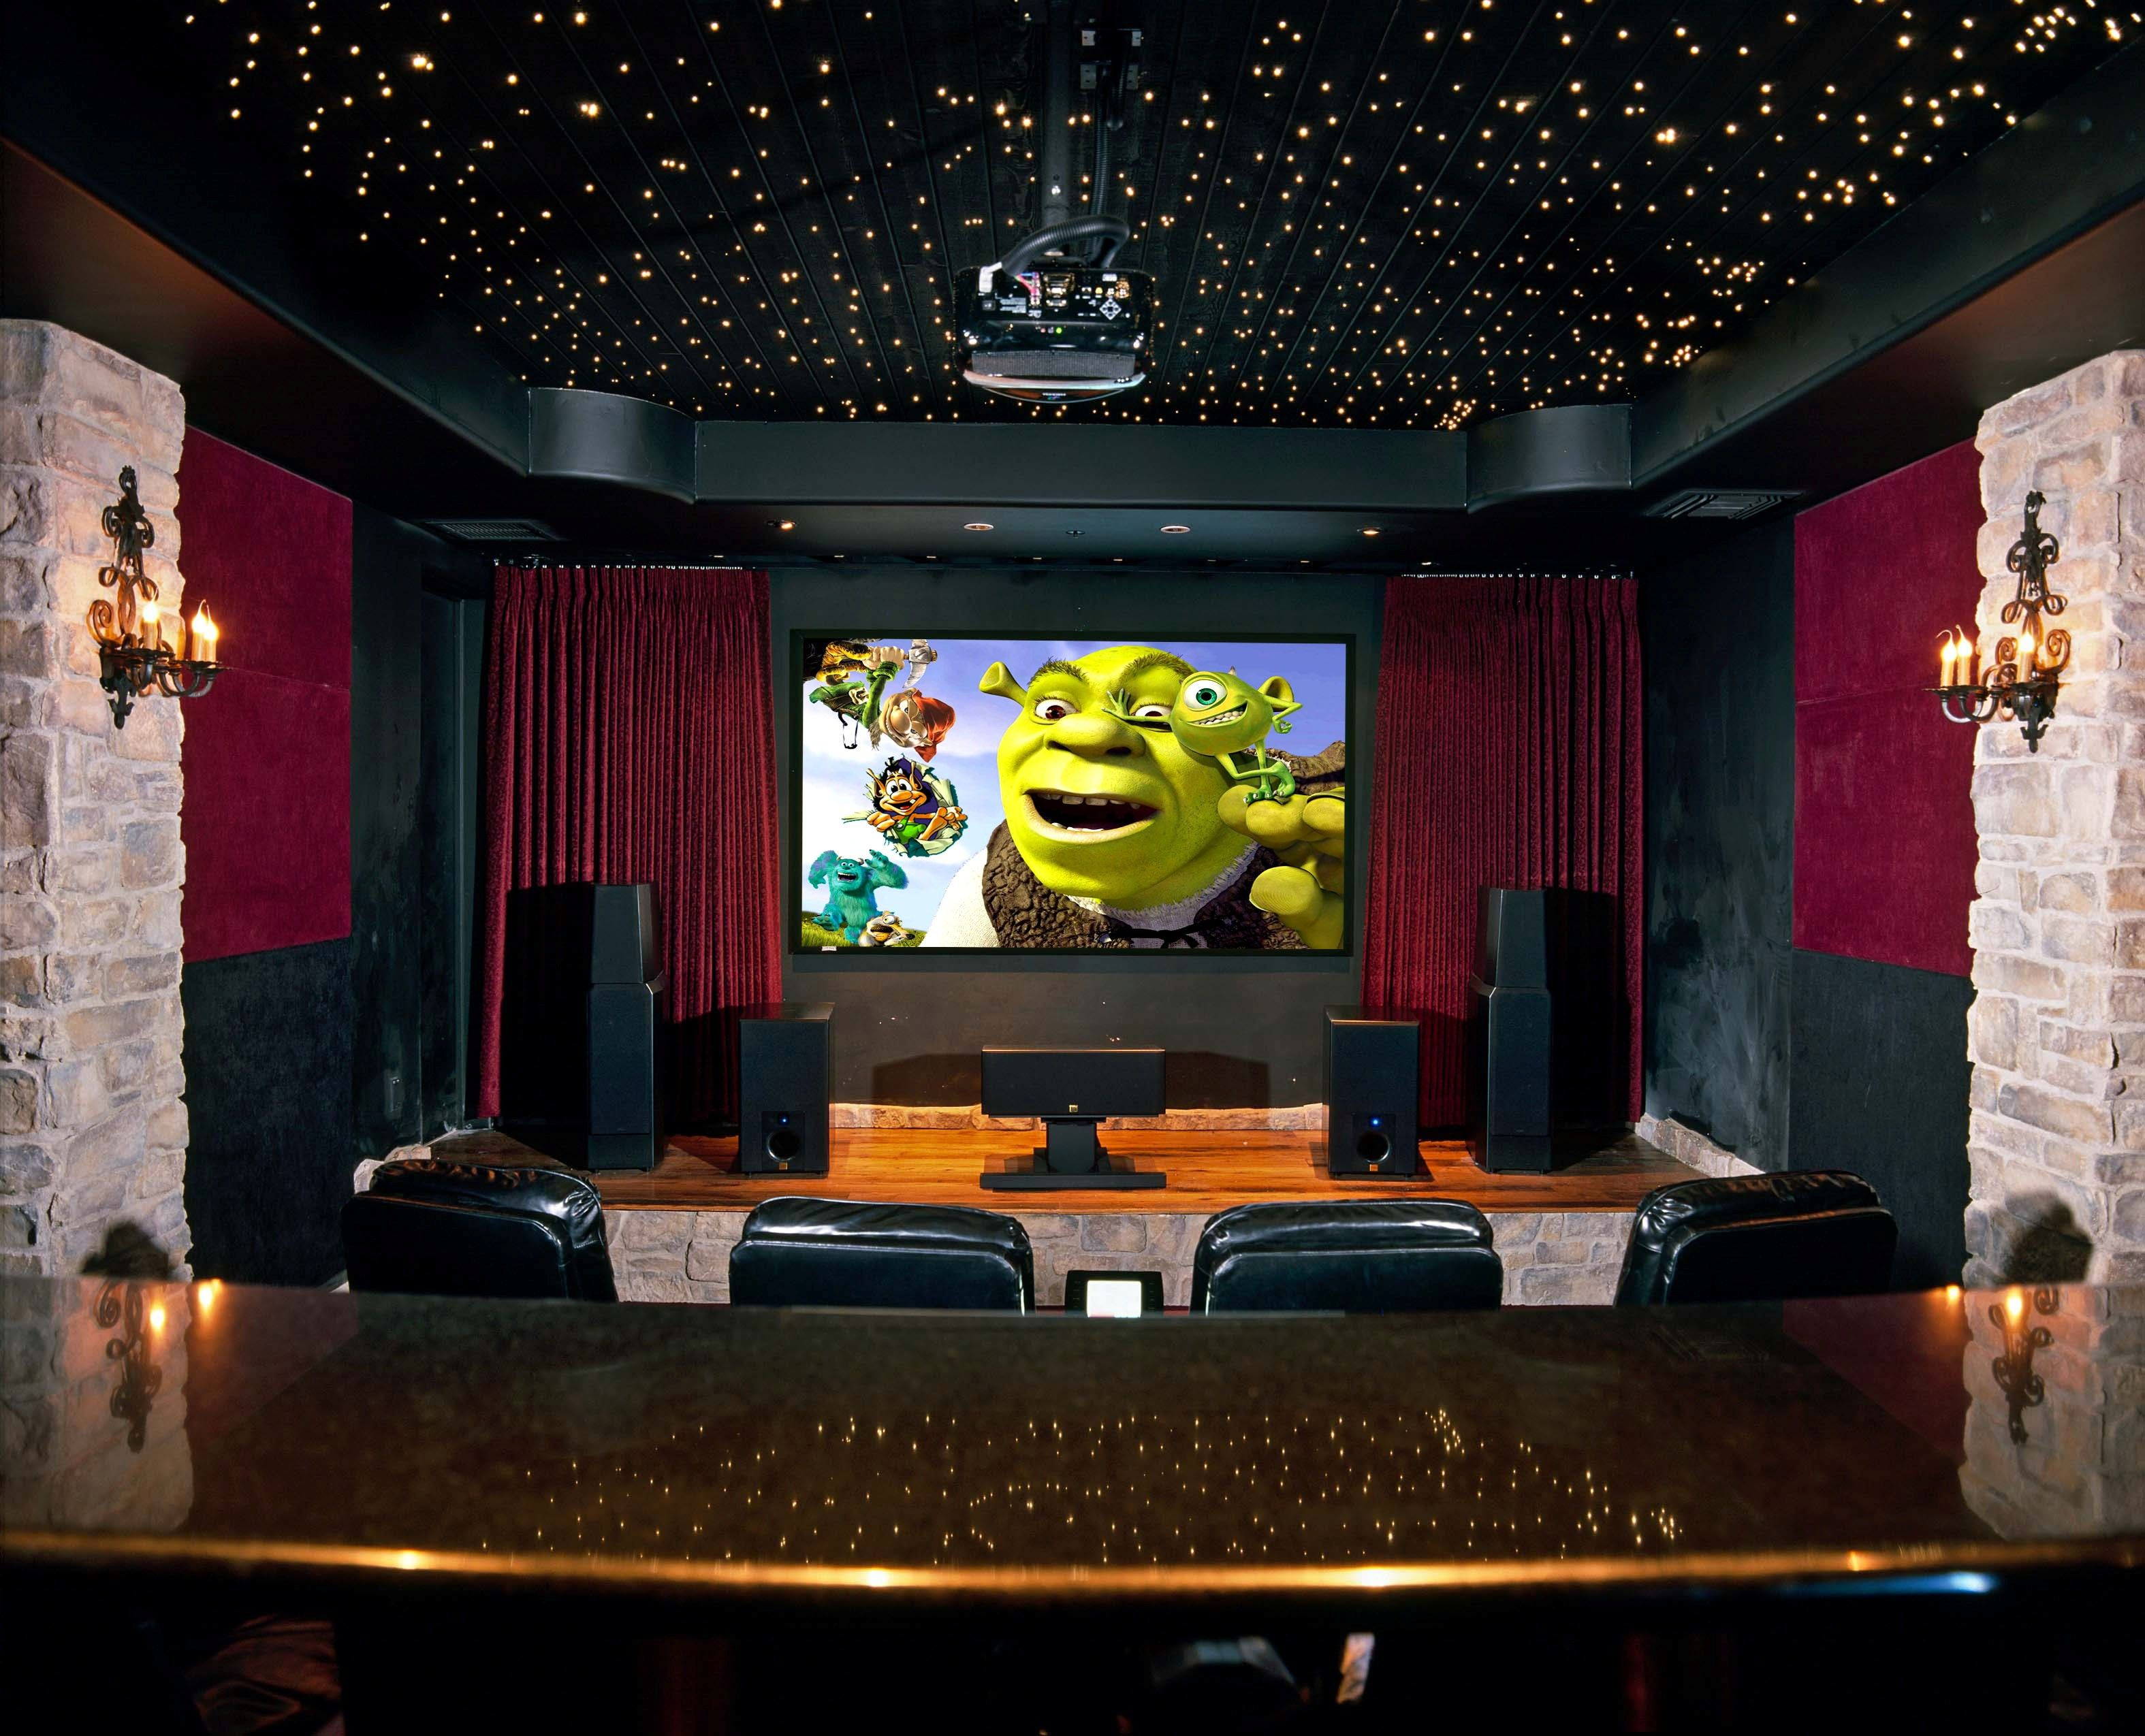 Creative Home Cinema Decor Decor Modern On Cool Fresh Netflix